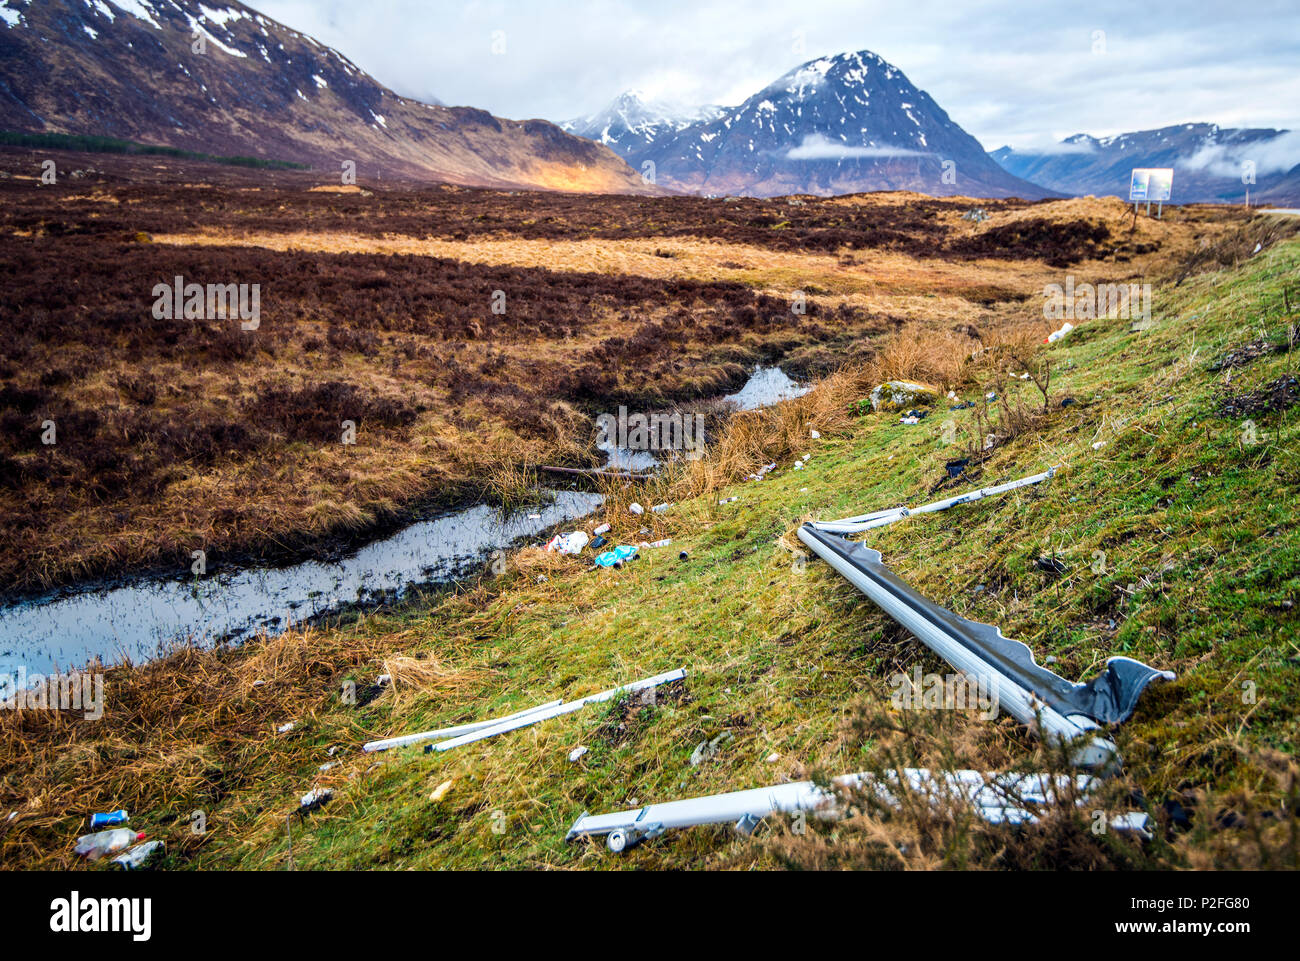 Car parts, caravan awning, plastic and metal dumped in Glen Coe - polluting a world class site of natural beauty in the Highlands of Scotland - Stock Image